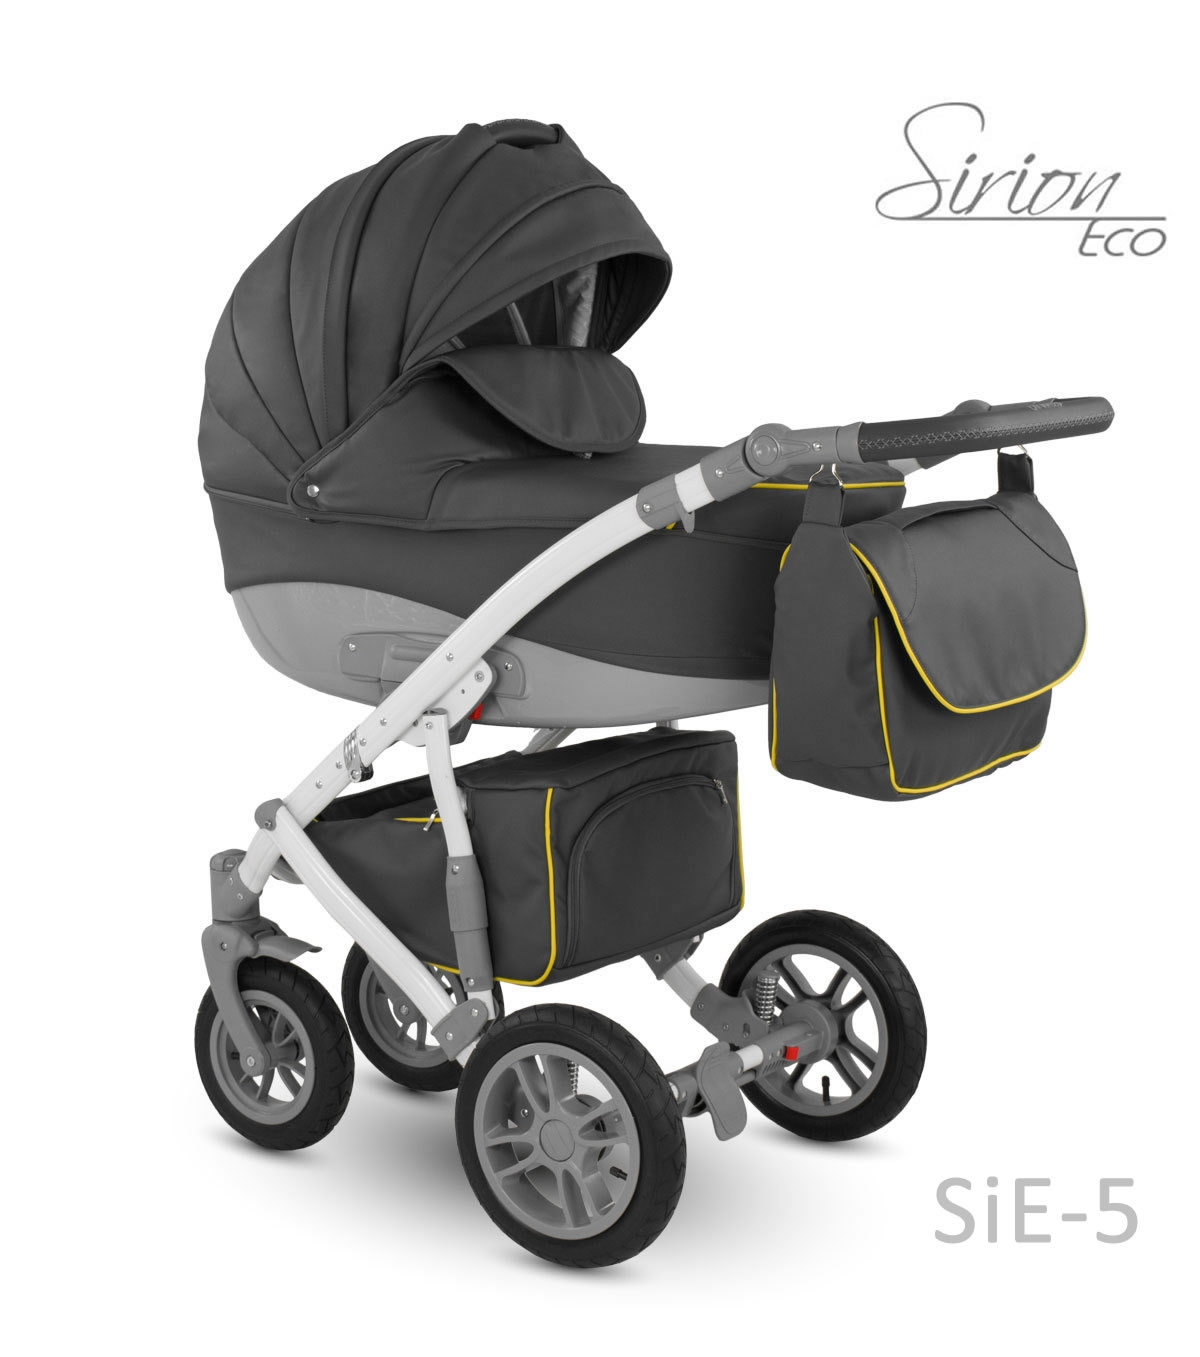 Carucior copii 2 in 1 Sirion Eco Camarelo SiE-5 imagine